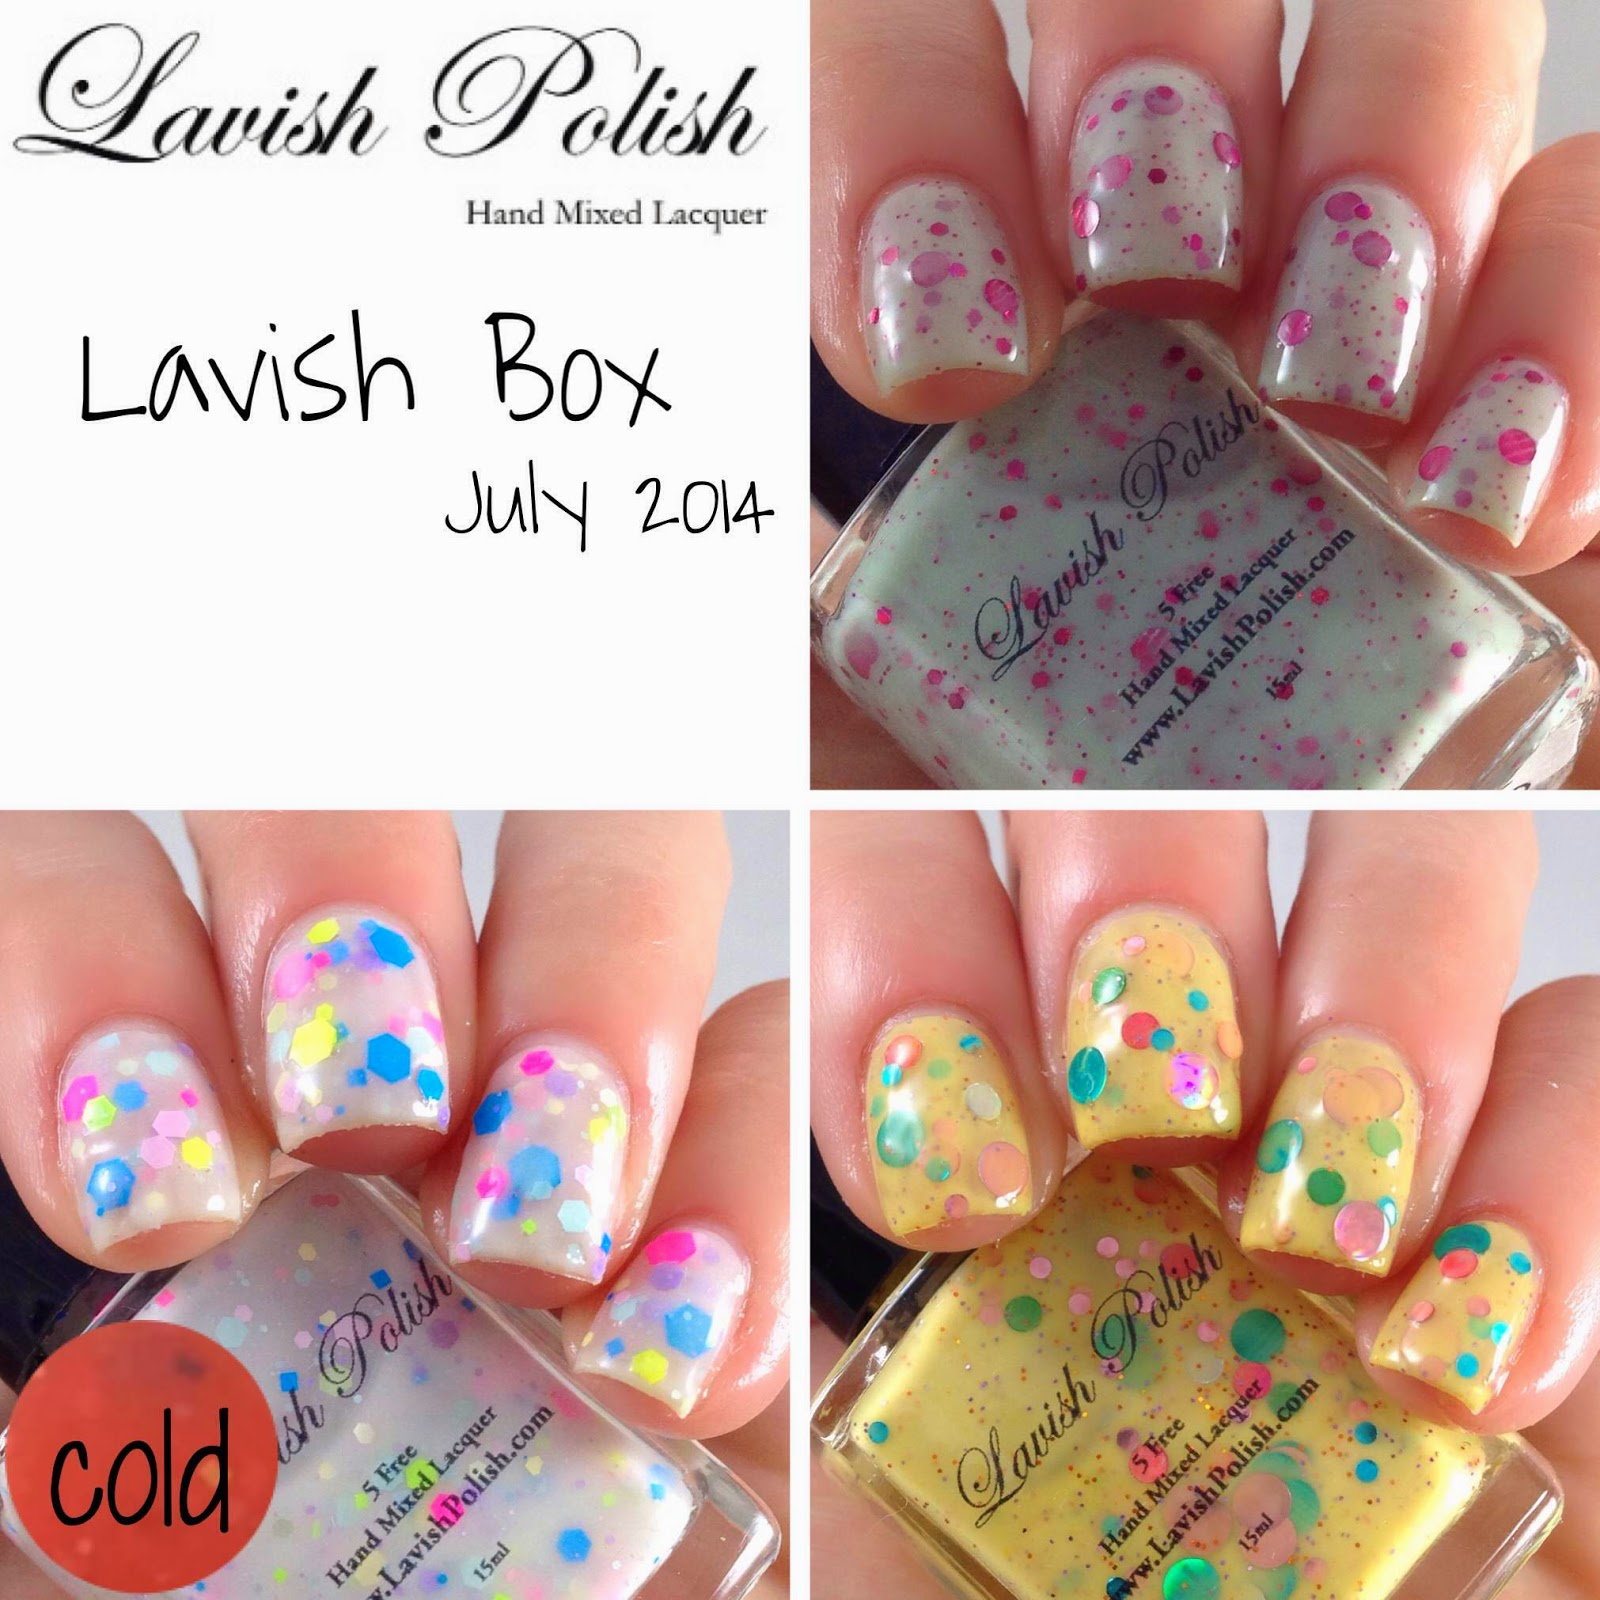 July 2014 Lavish Box | Lacquer: The Best Medicine! A Nail